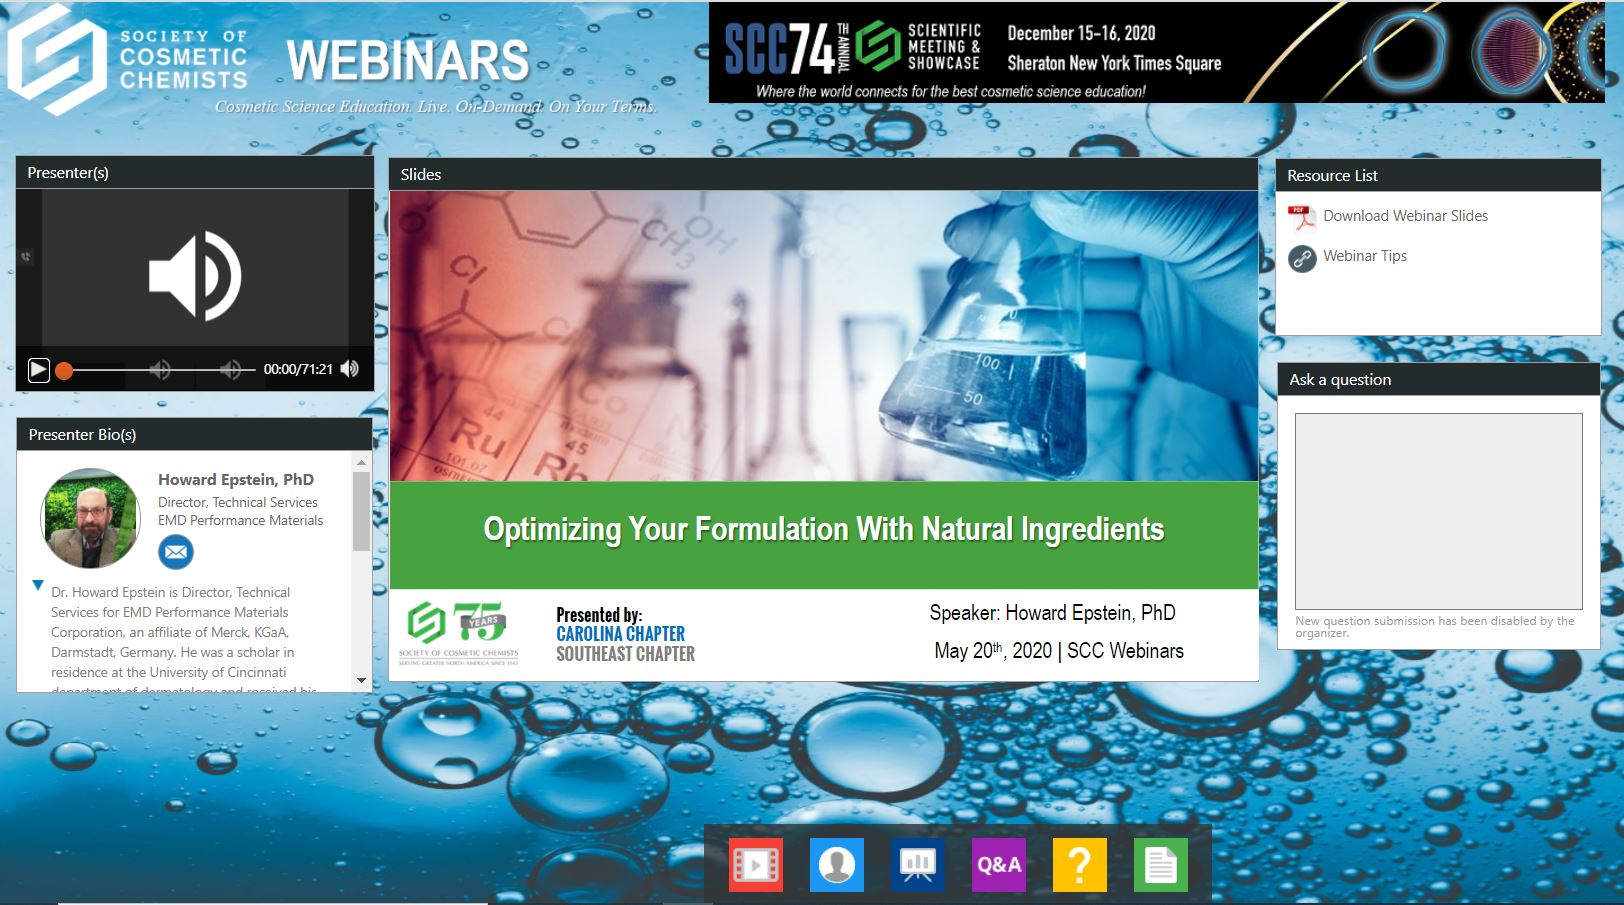 Optimizing Your Formulation with Natural Ingredients